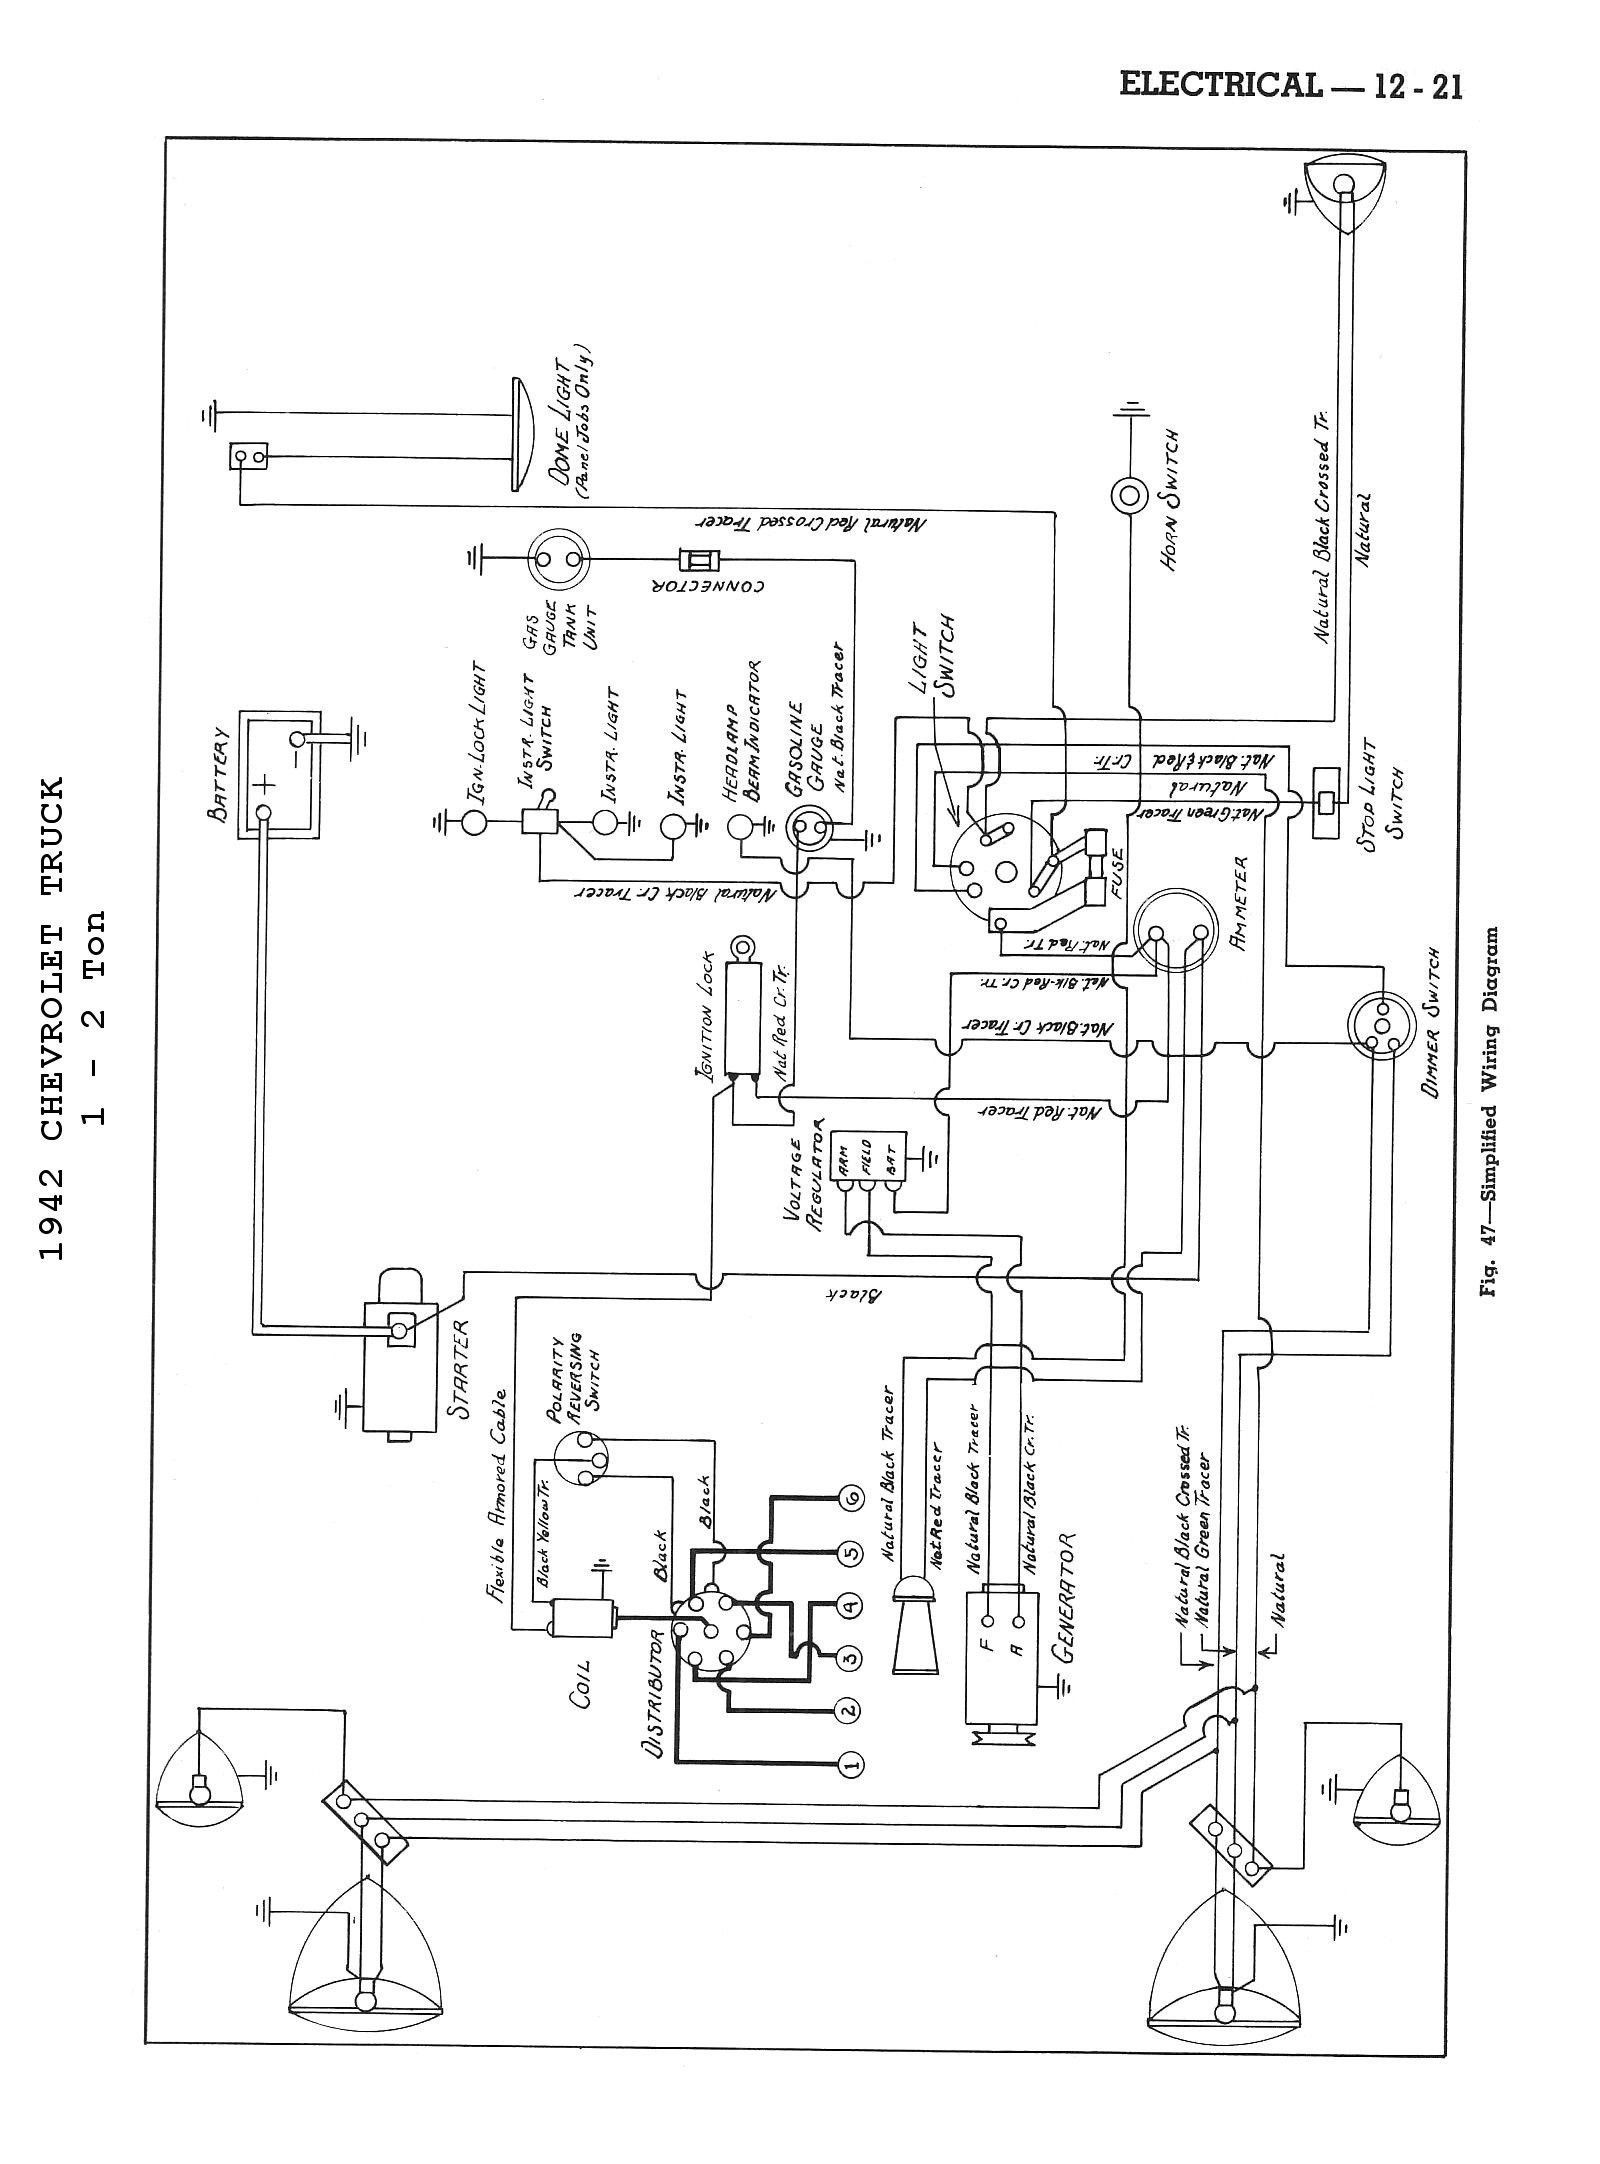 How to Wire Hazard Flasher Elegant Blinker Wiring Diagram In 2020 Of How to Wire Hazard Flasher